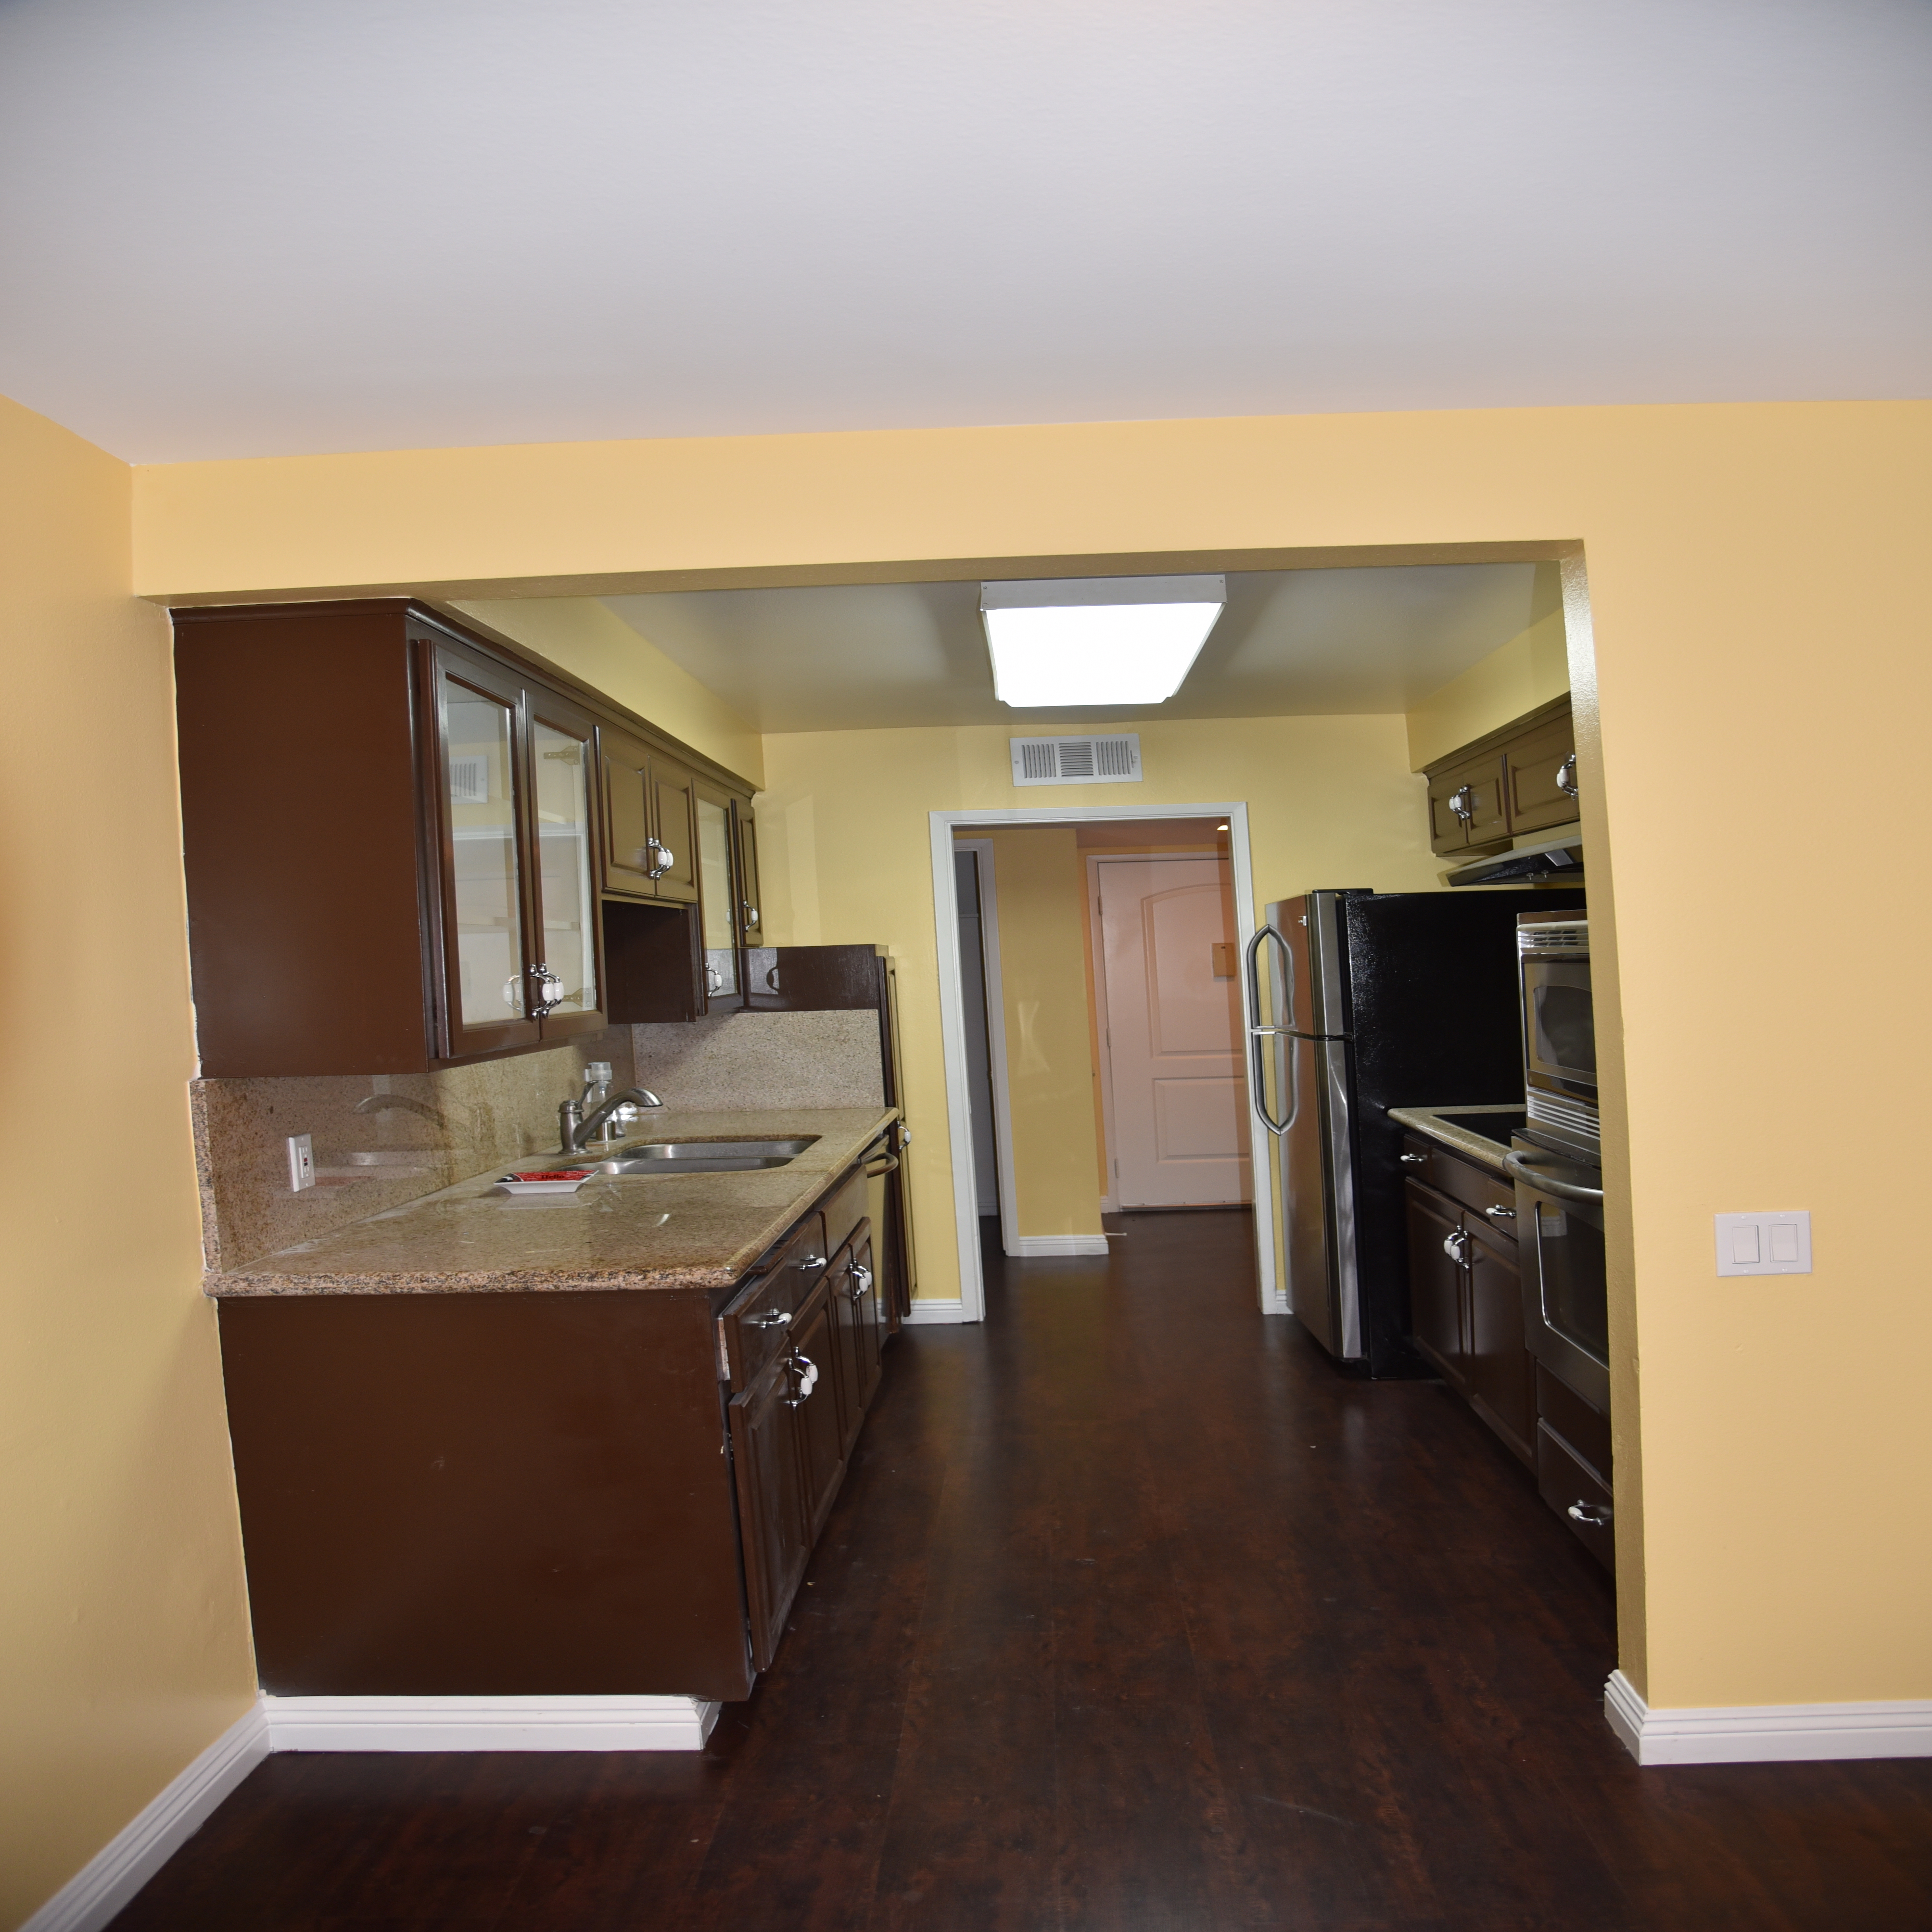 images of kitchen flooring 4637 willis avenue unit 108 rental listings avail 4637